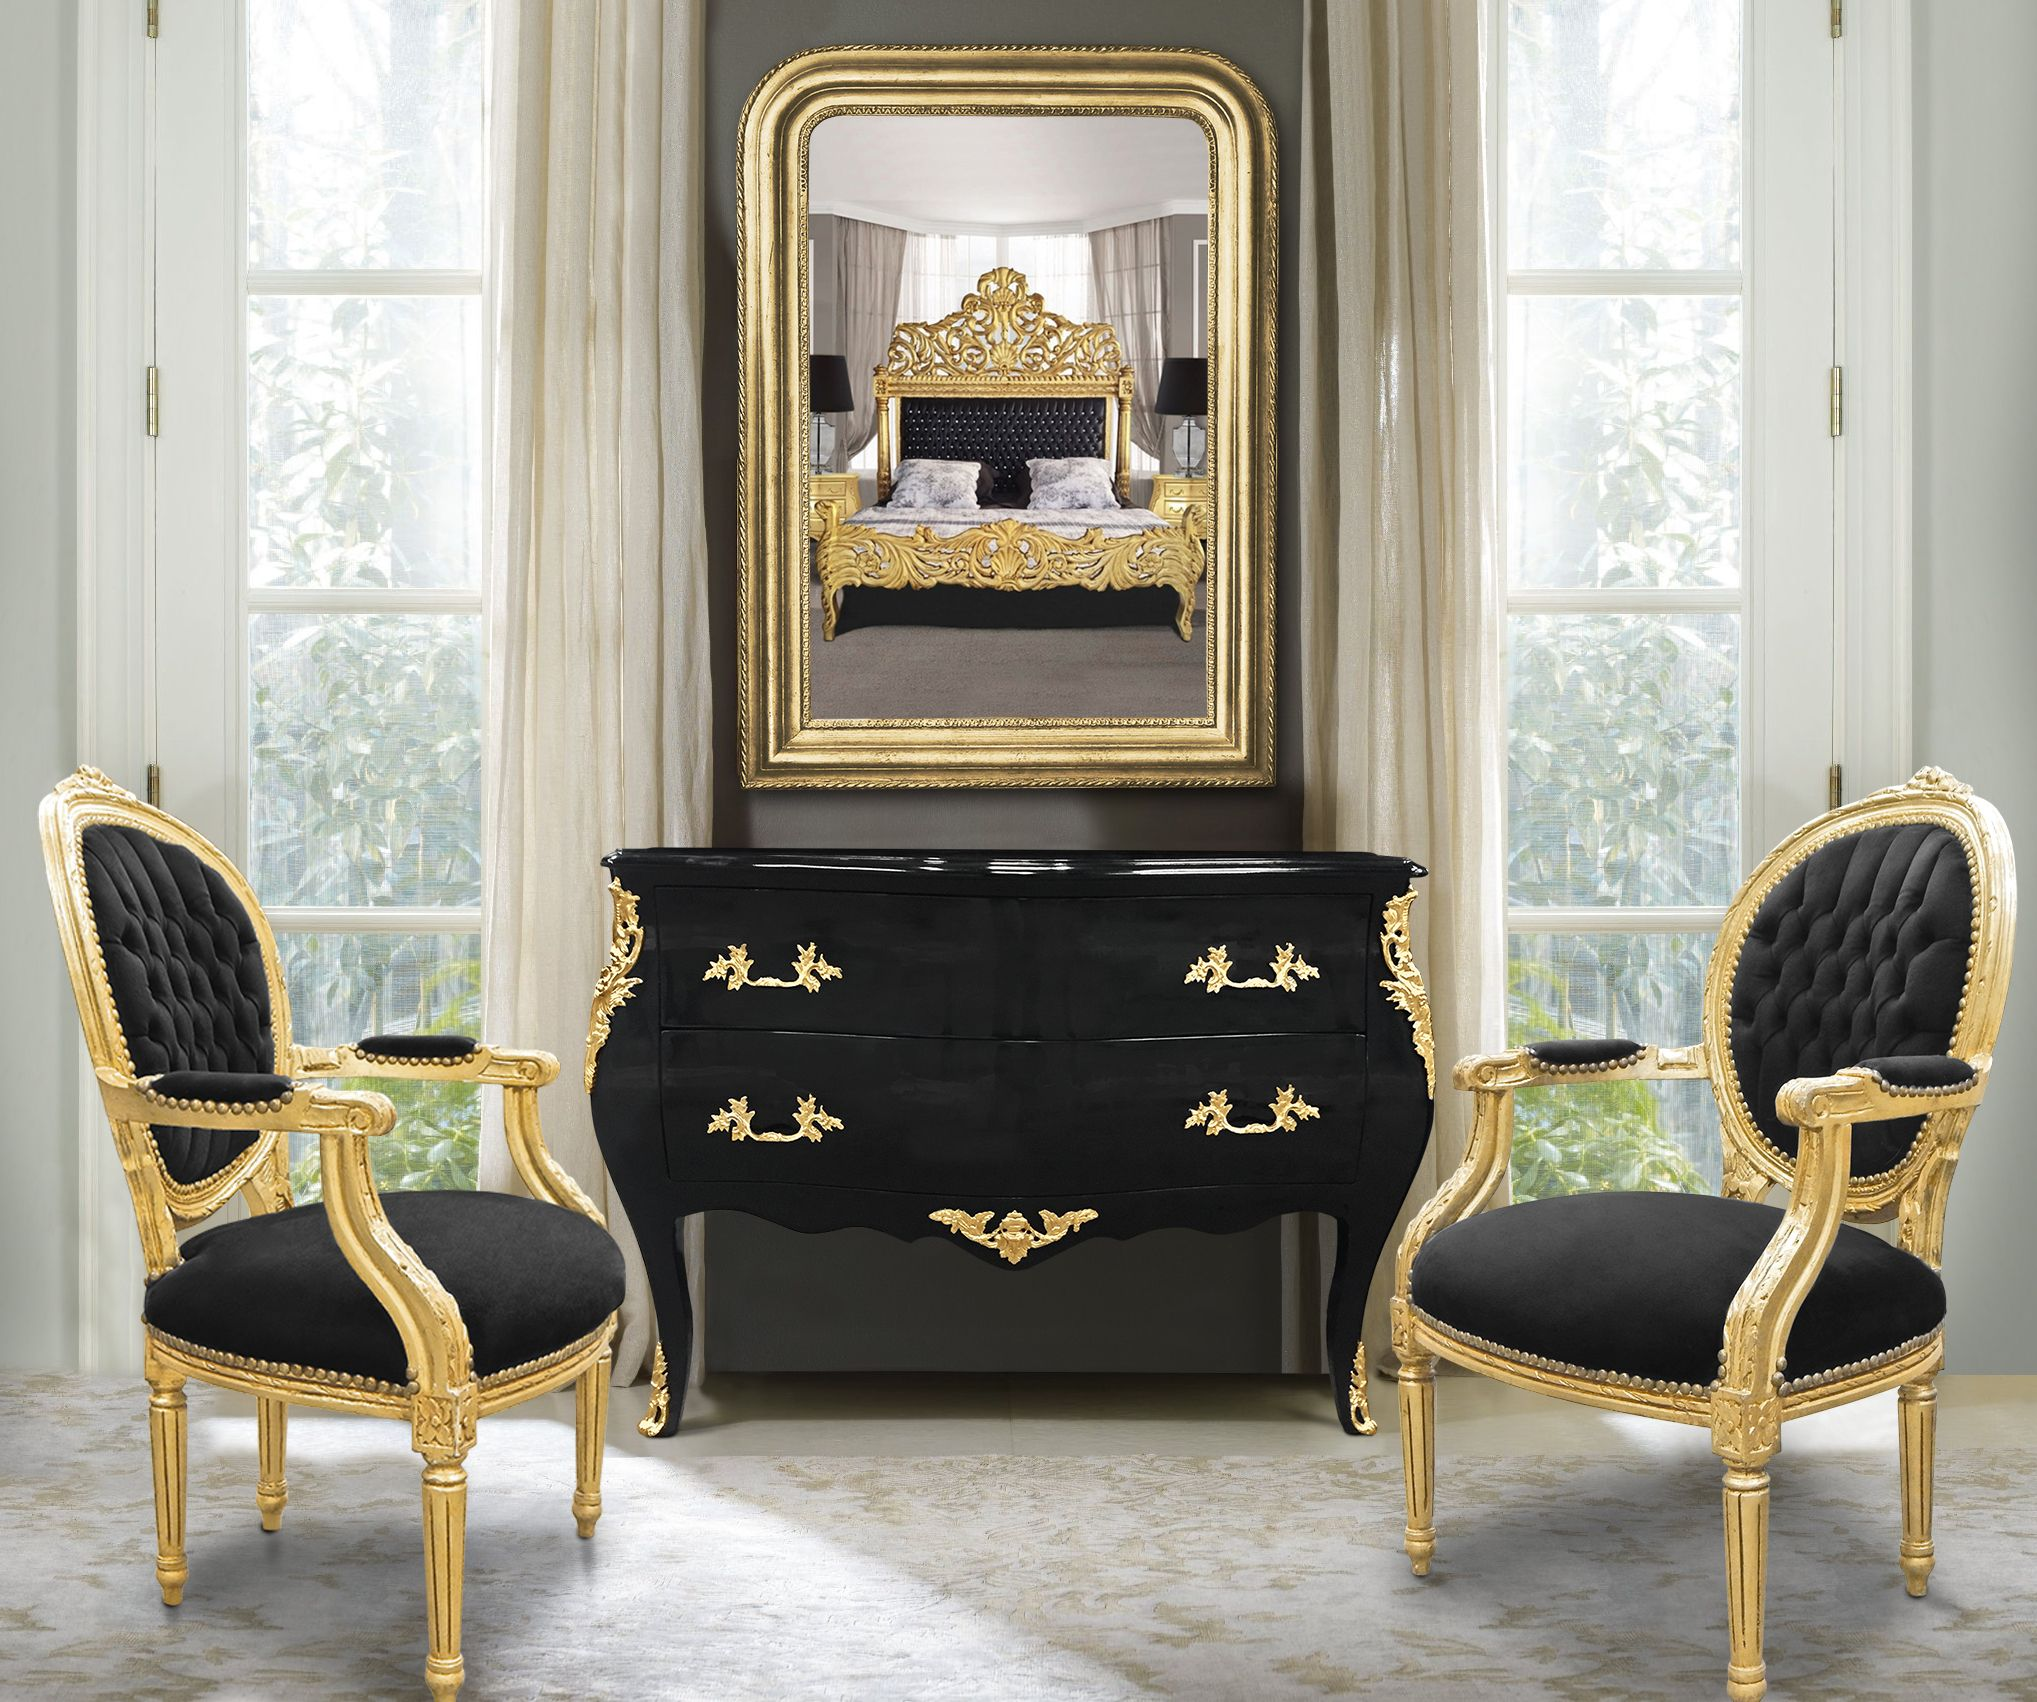 Pin baroque bed purple velvet fabric with rhinestones and black - Baroque Chest Of Drawers Commode Of Style Louis Xv Black And Gold Bronzes